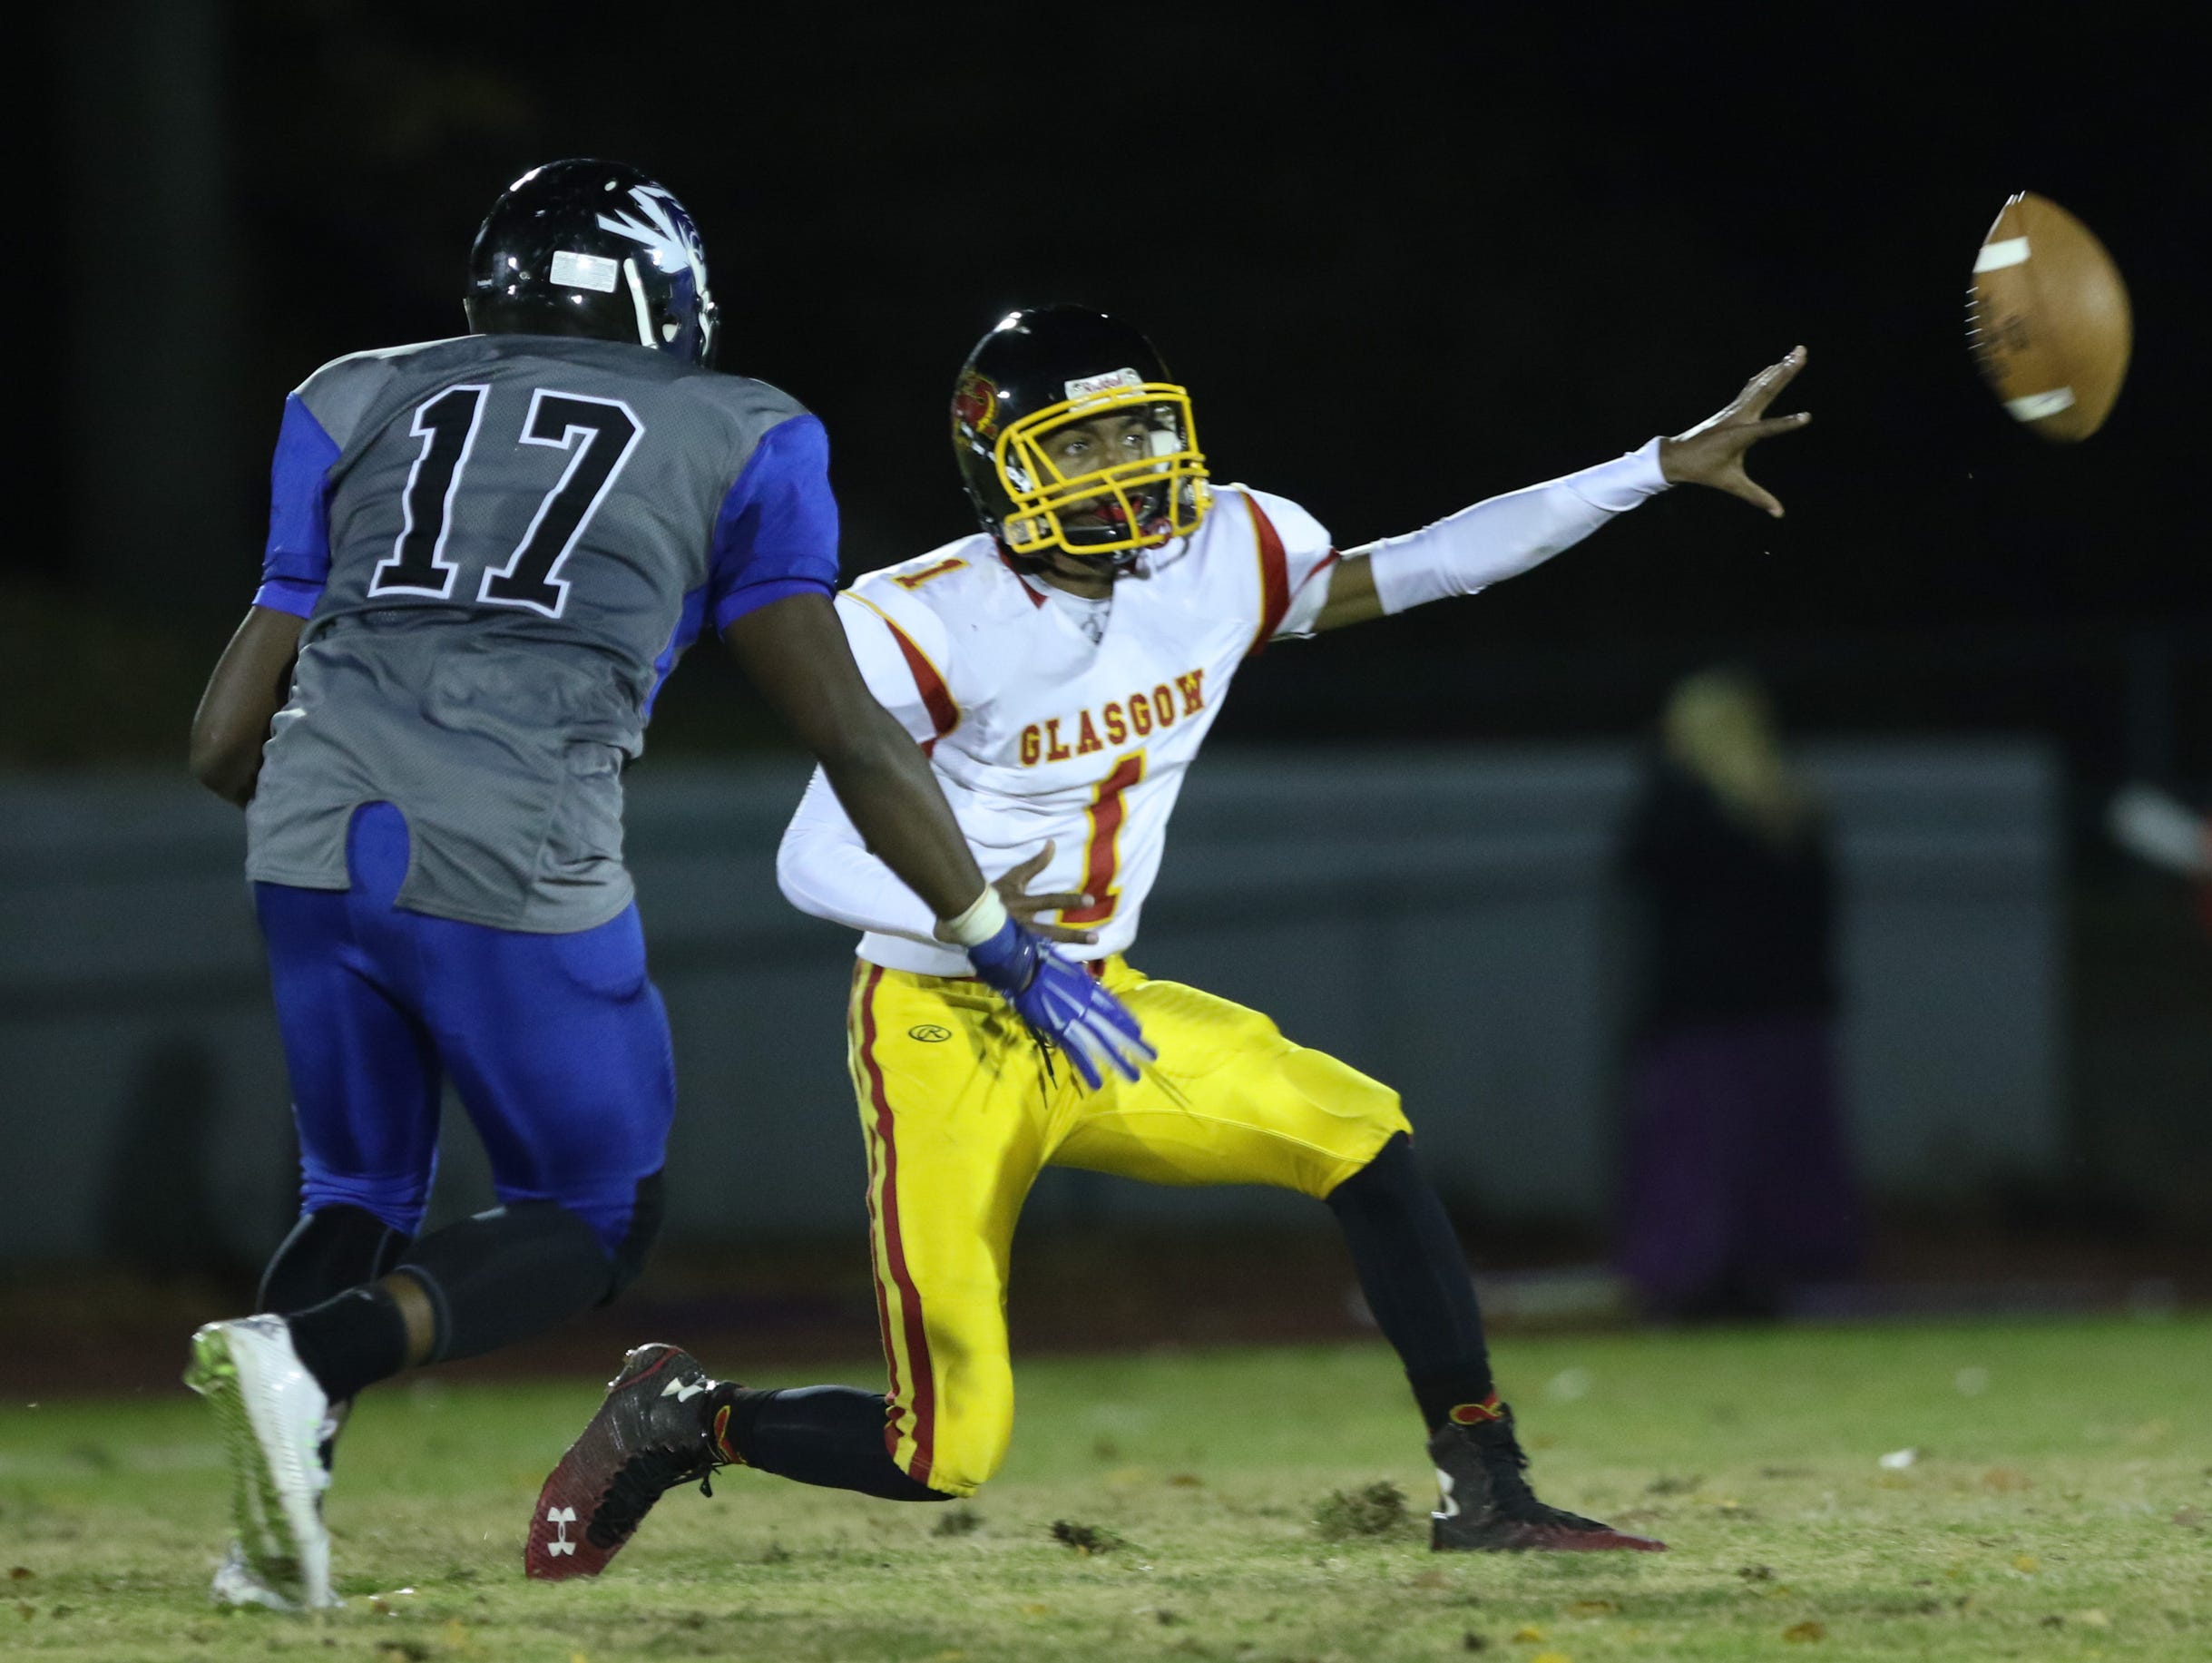 Glasgow quarterback Isaiah Wilson pitches the ball to a teammate in the second quarter. No. 3 Howard hosts No. 9 Glasgow at Baynard Stadium Thursday.